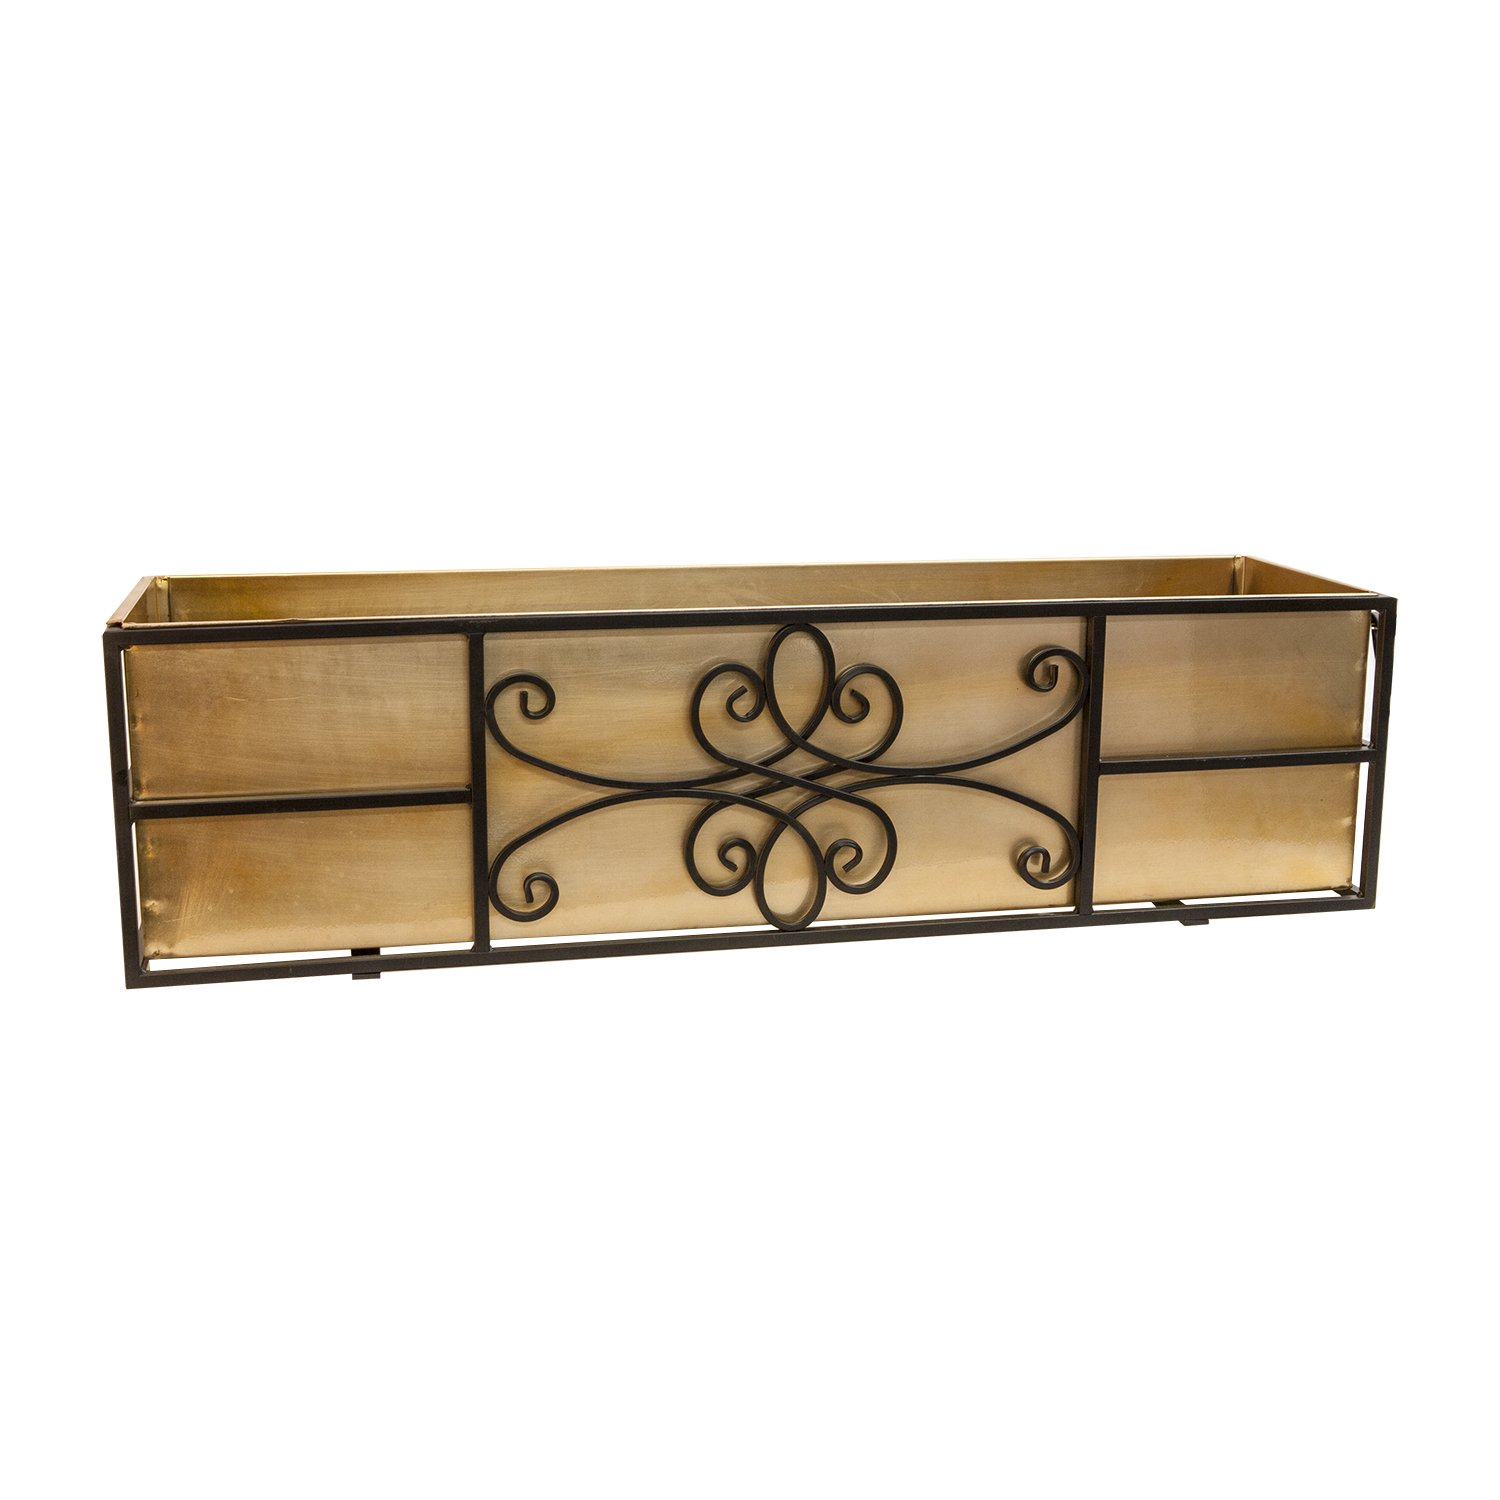 Panacea Quatrefoil Window Box, 36'' by Panacea